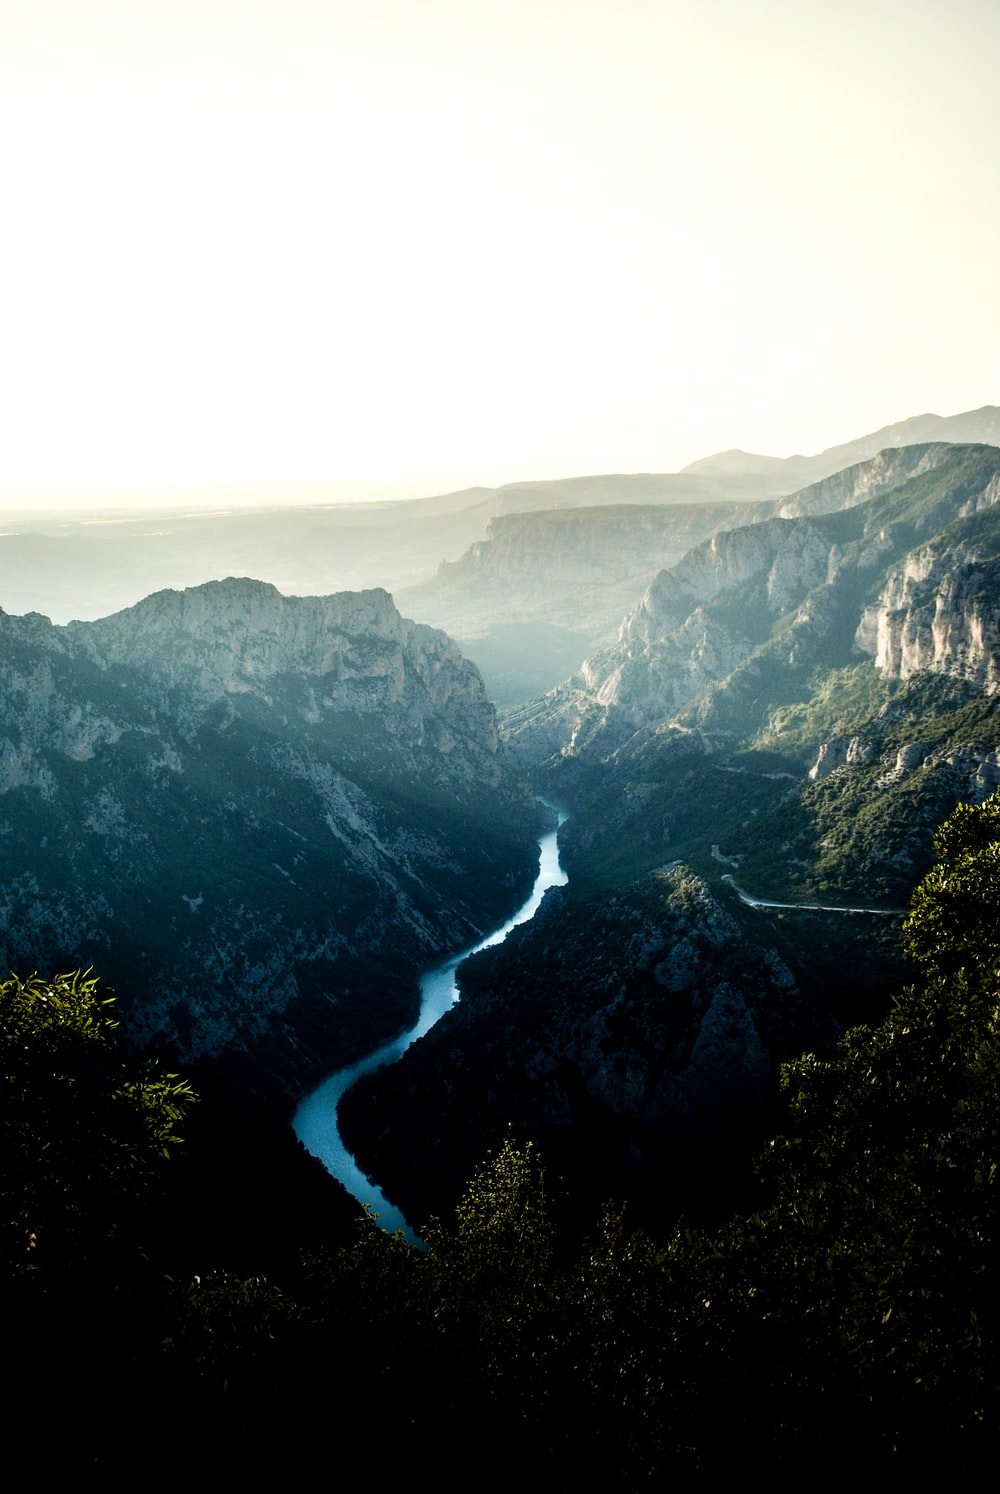 mountains and river during day